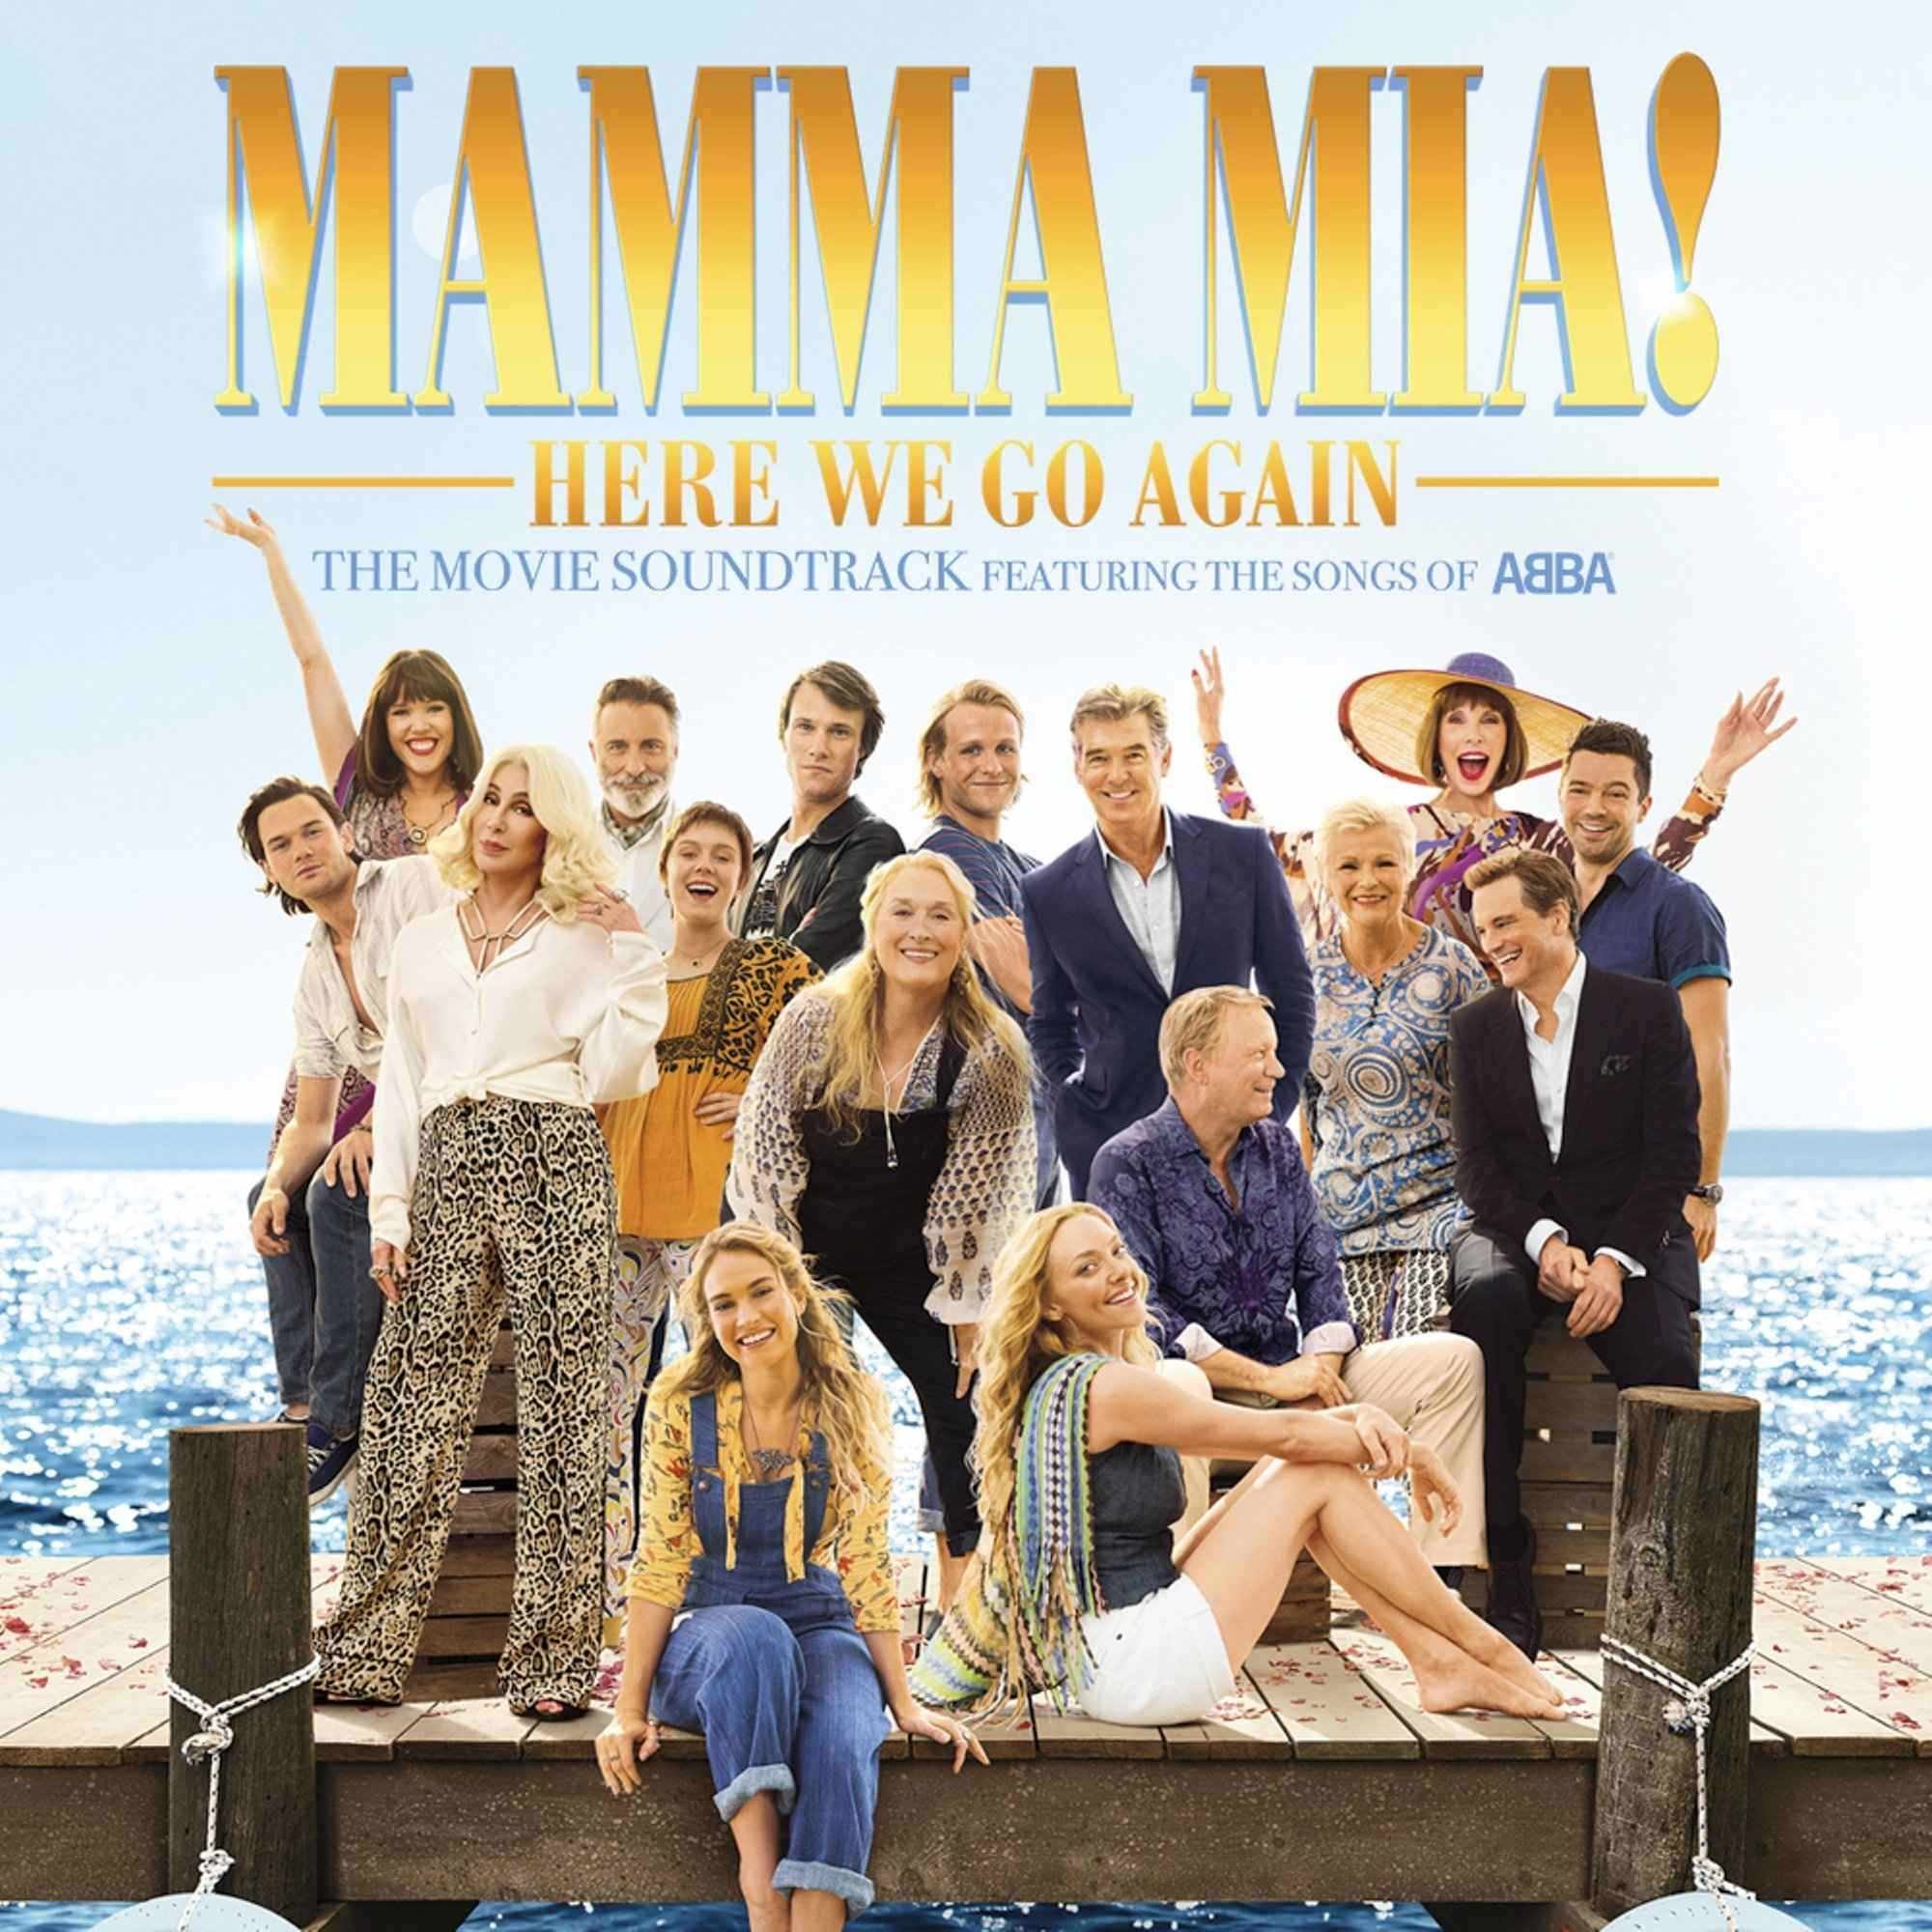 媽媽咪呀!回來了 / Mamma Mia! Here We Go Again